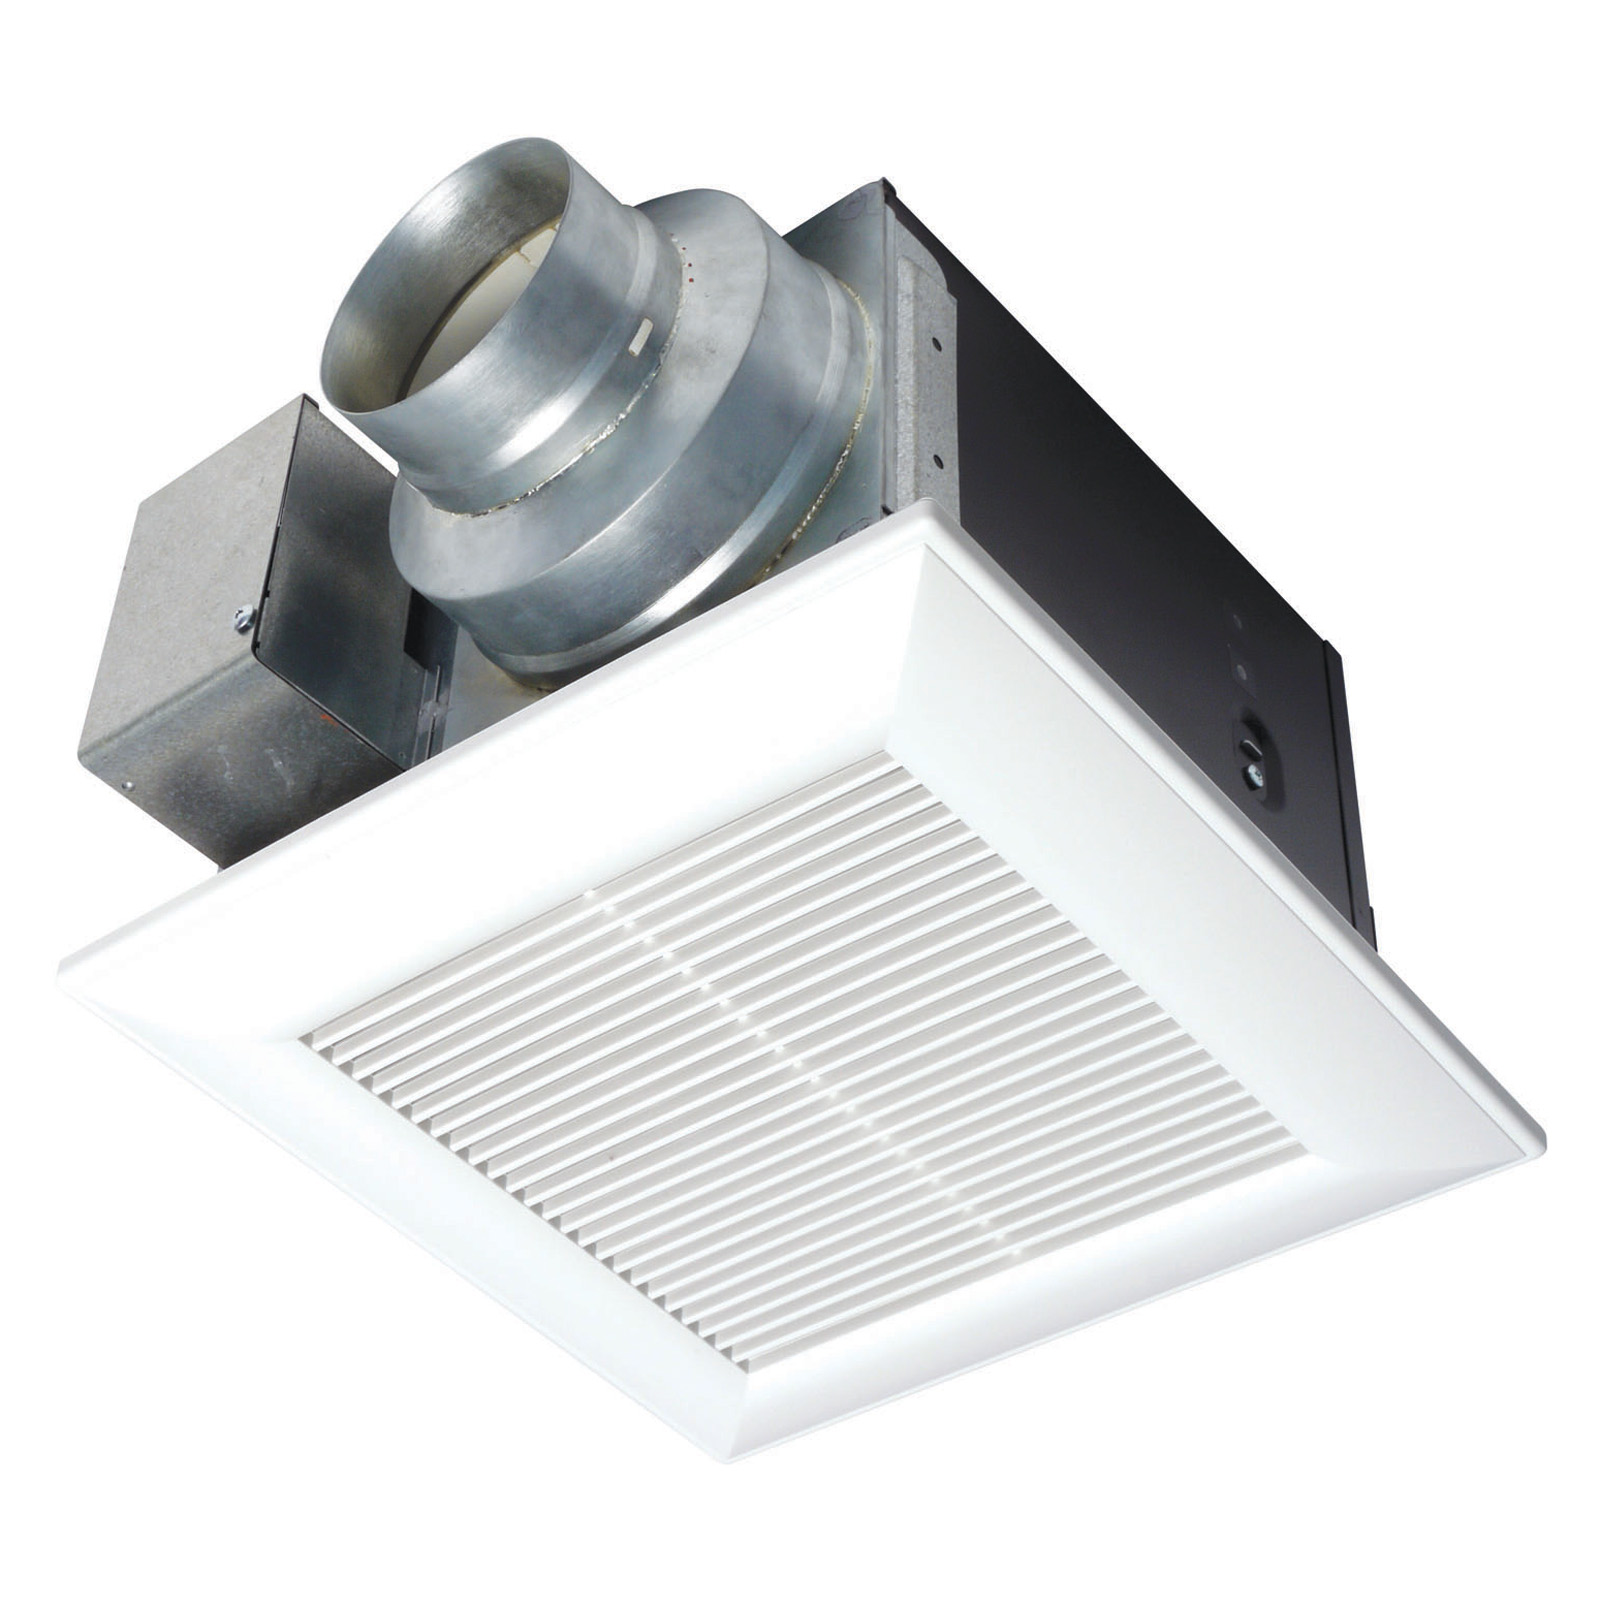 Mountable Exhaust Fan : Panasonic whisperceiling fv vq ceiling mount bathroom